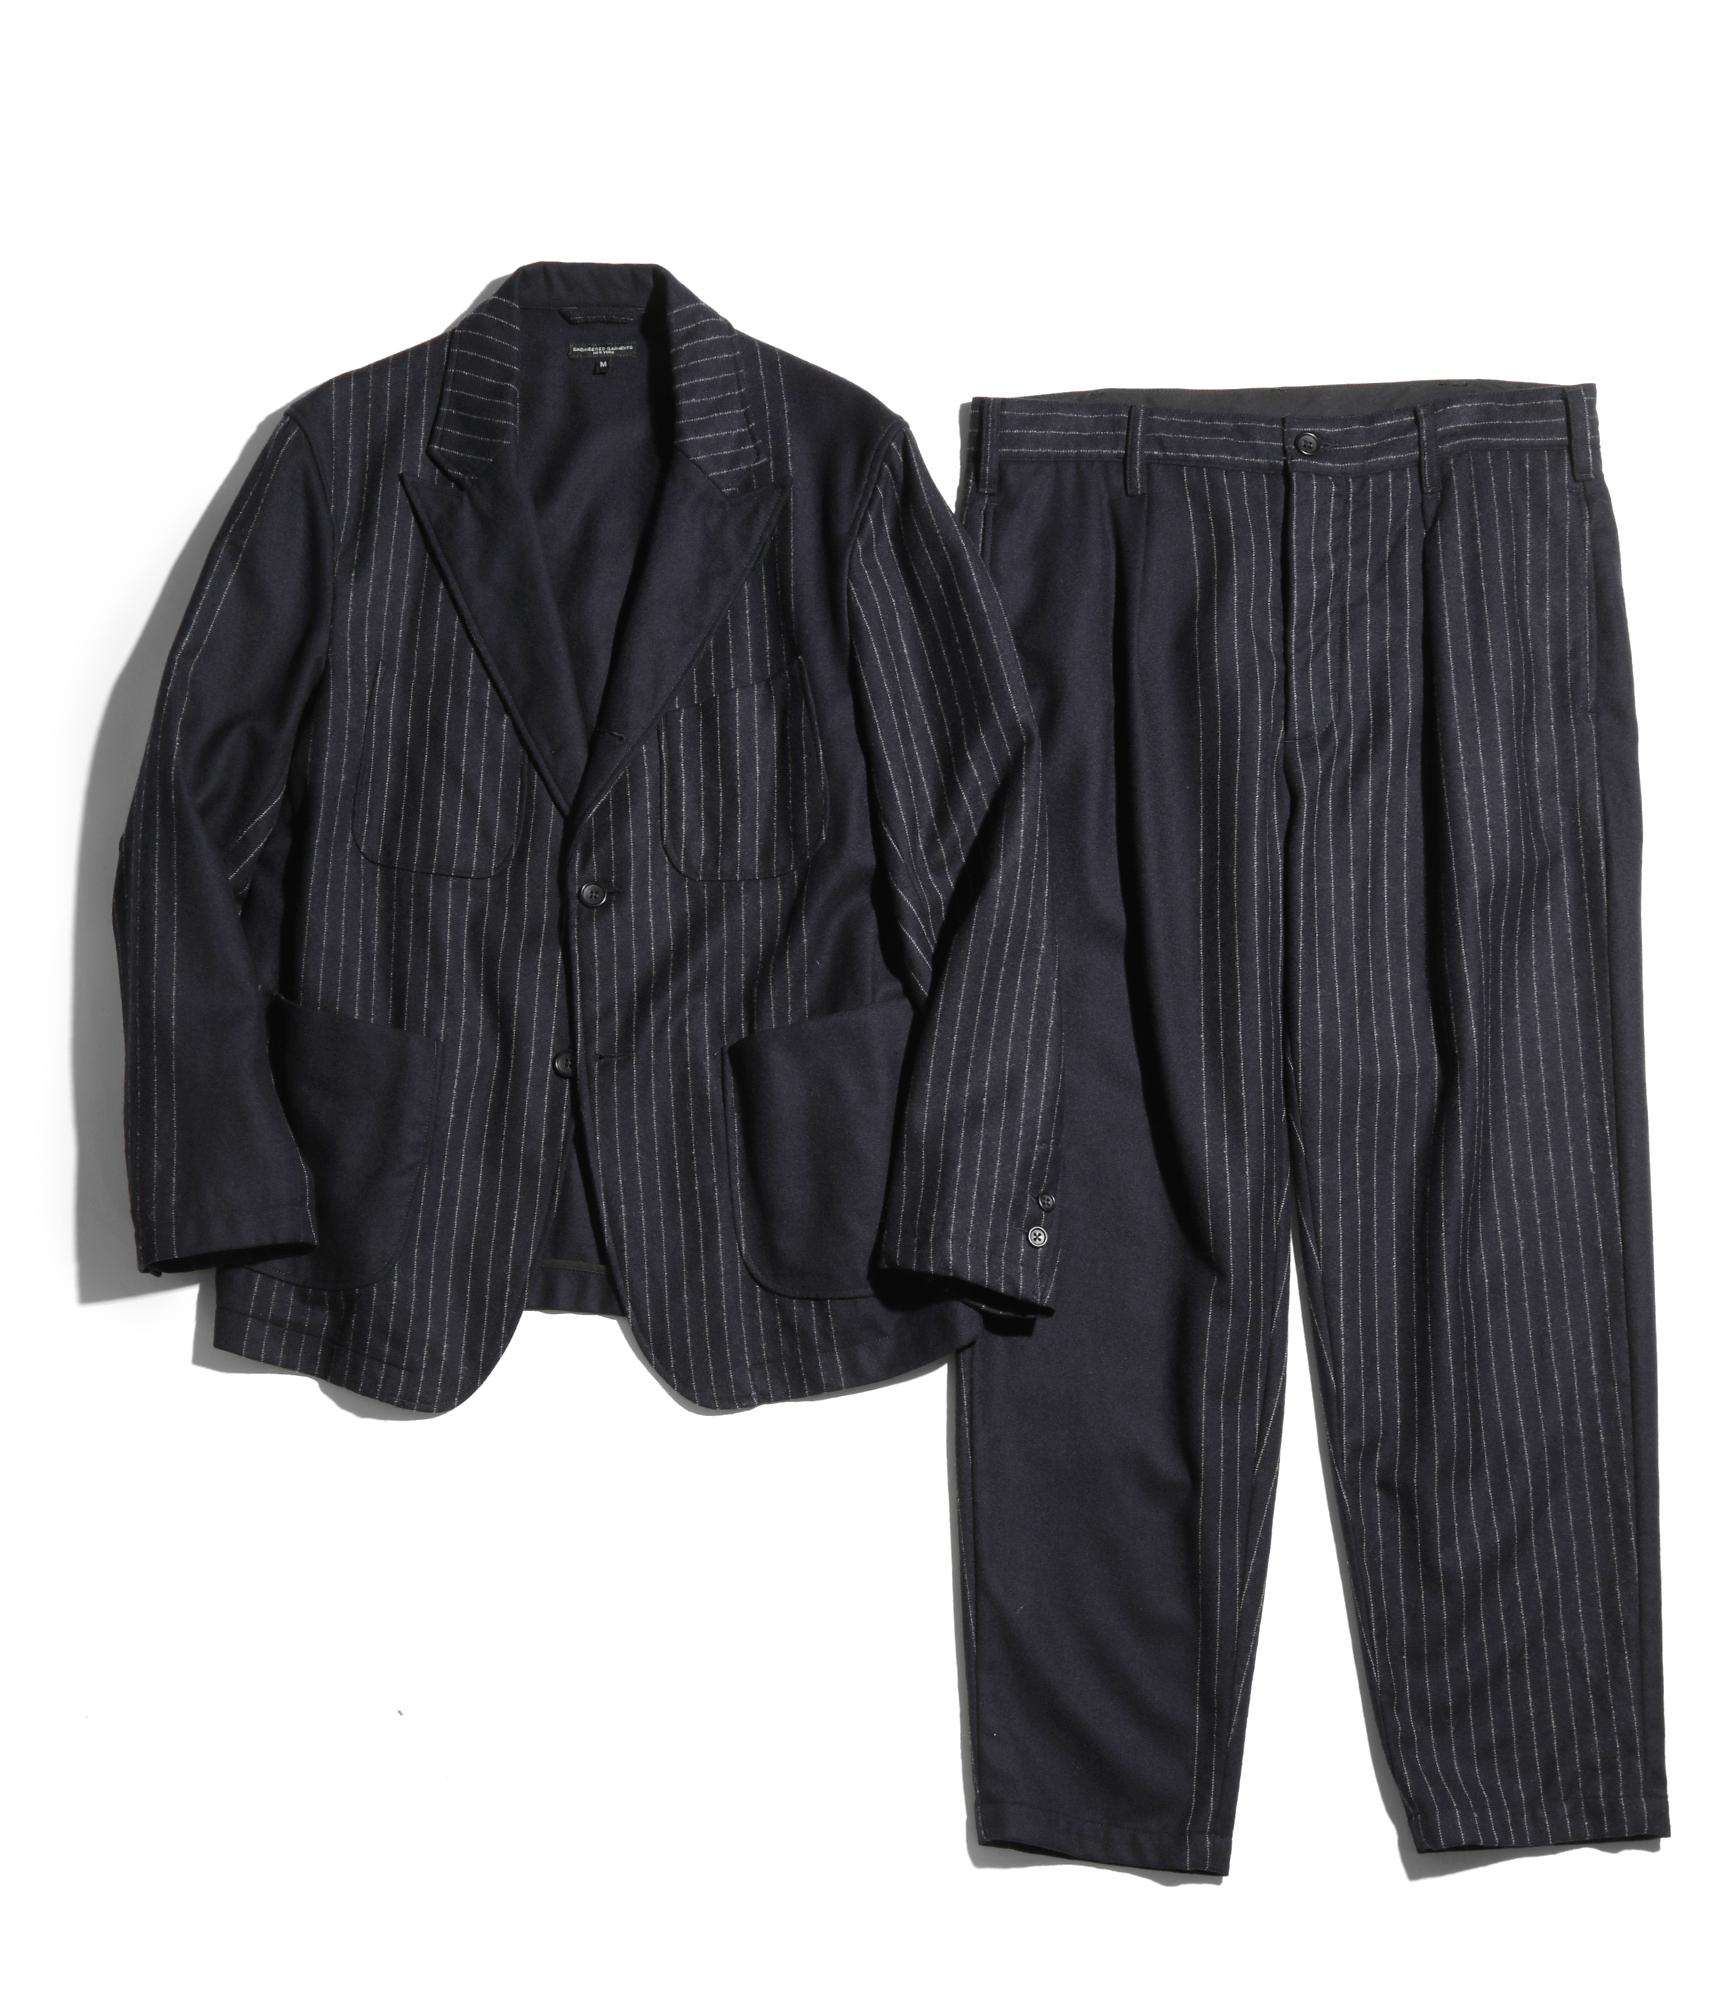 〈ENGINEERED GARMENTS〉2020 FALL WINTER 2-PIECE SUITS